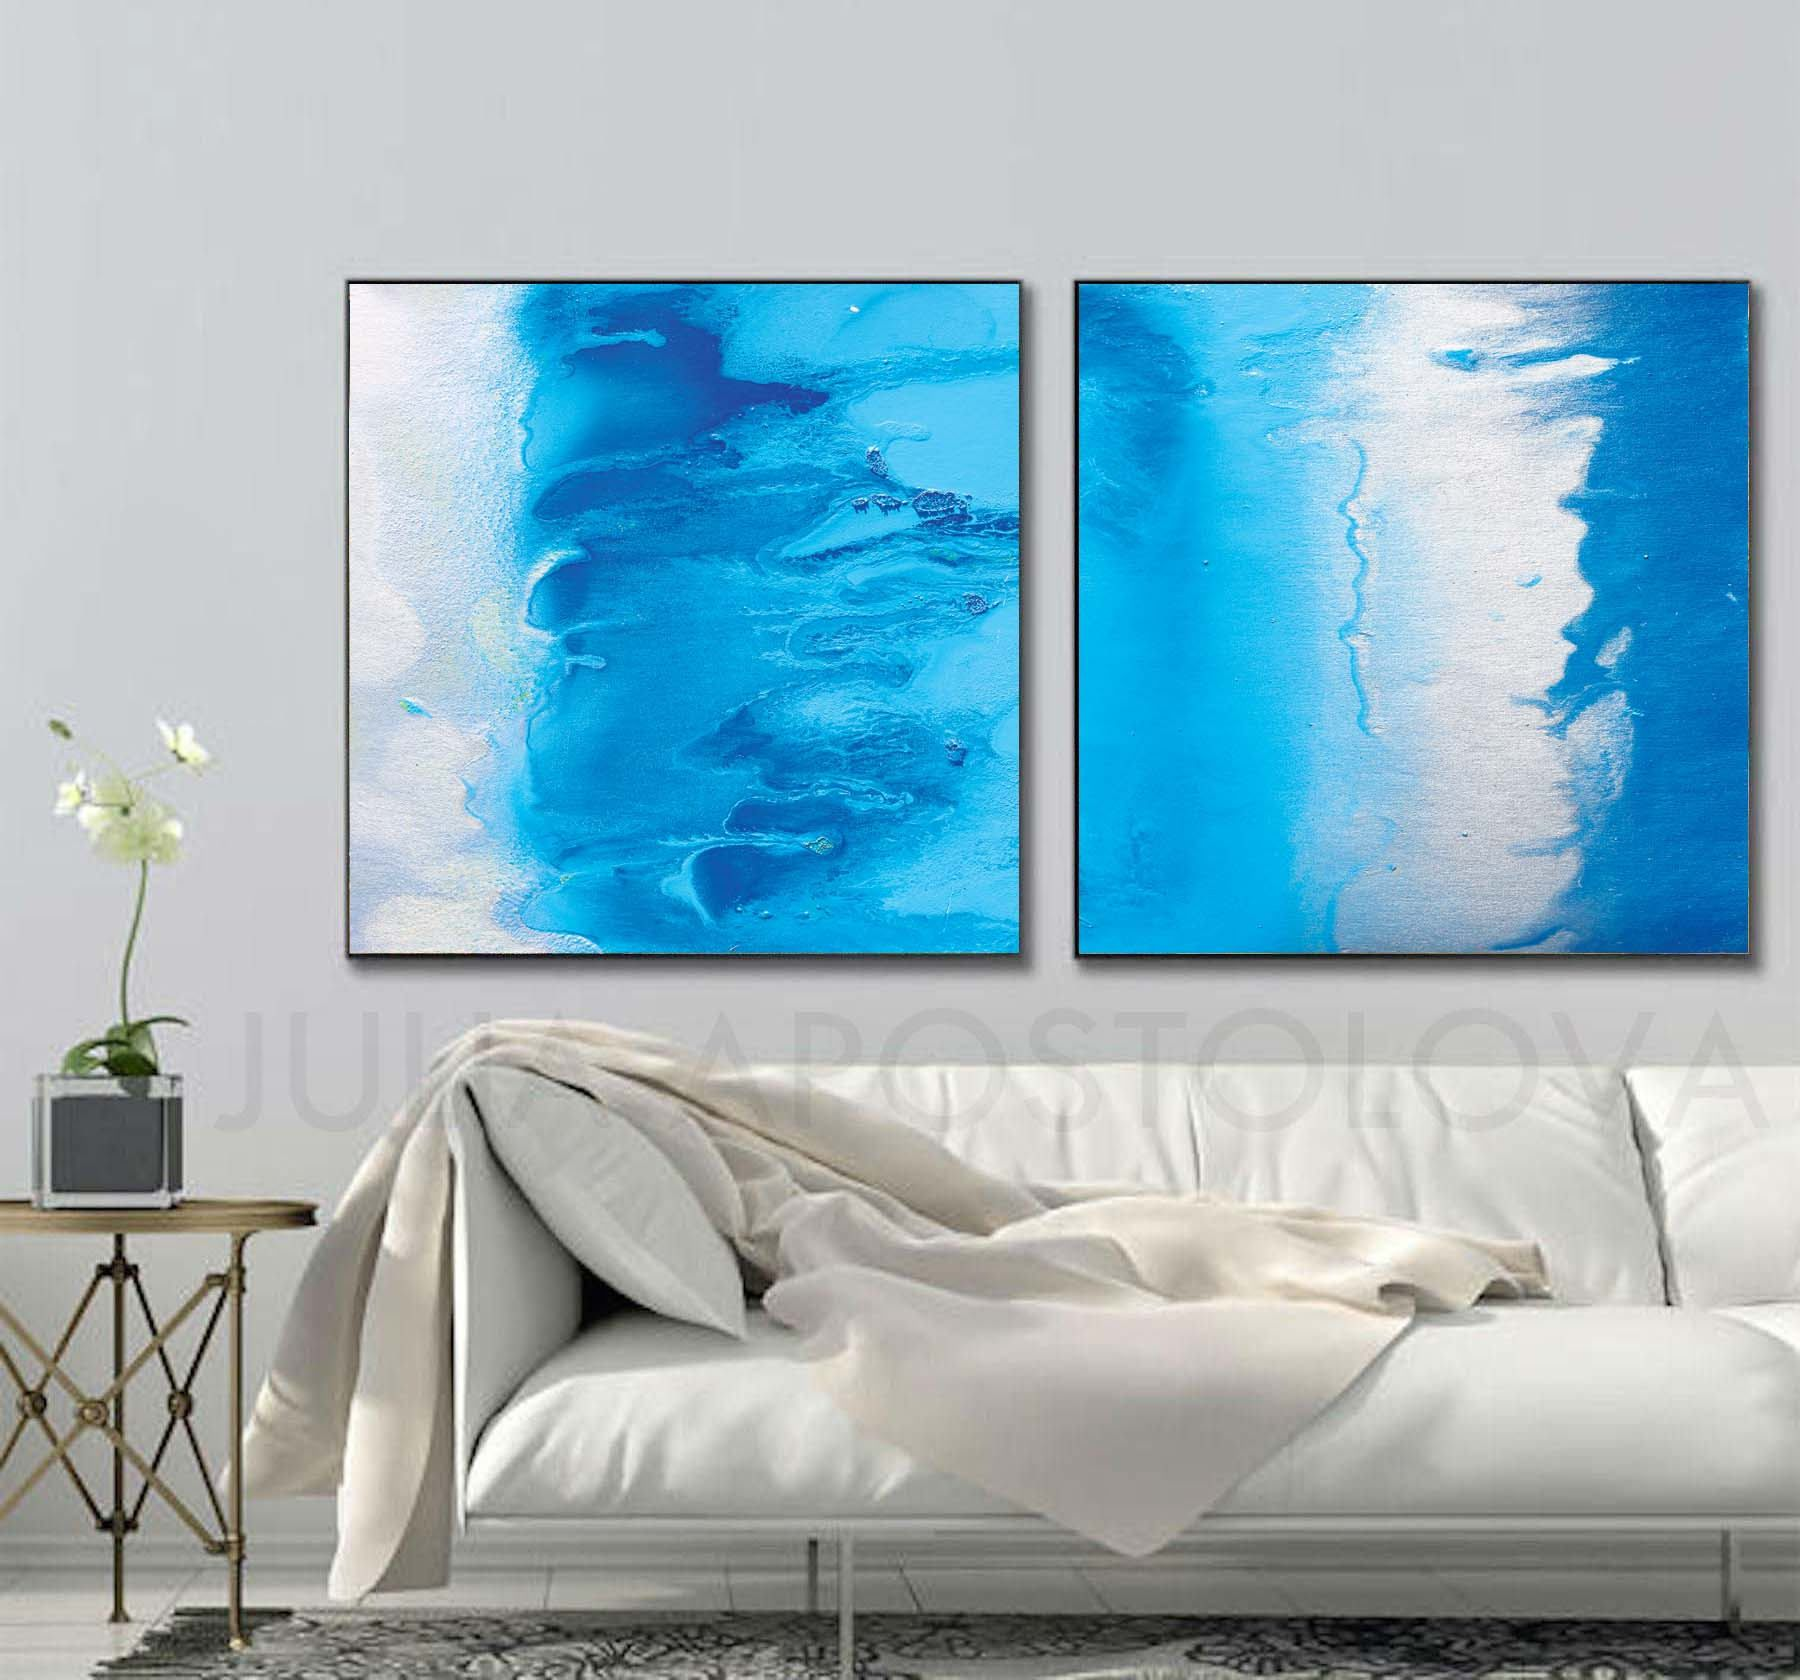 Beach decor wall art modern abstract art print minimalist - Tropical Escape Aqua Blue Wall Art Canvas Art Print Beach Home Decor Turquoise Abstract Extra Large Wall Art Watercolor Print Set Of 2